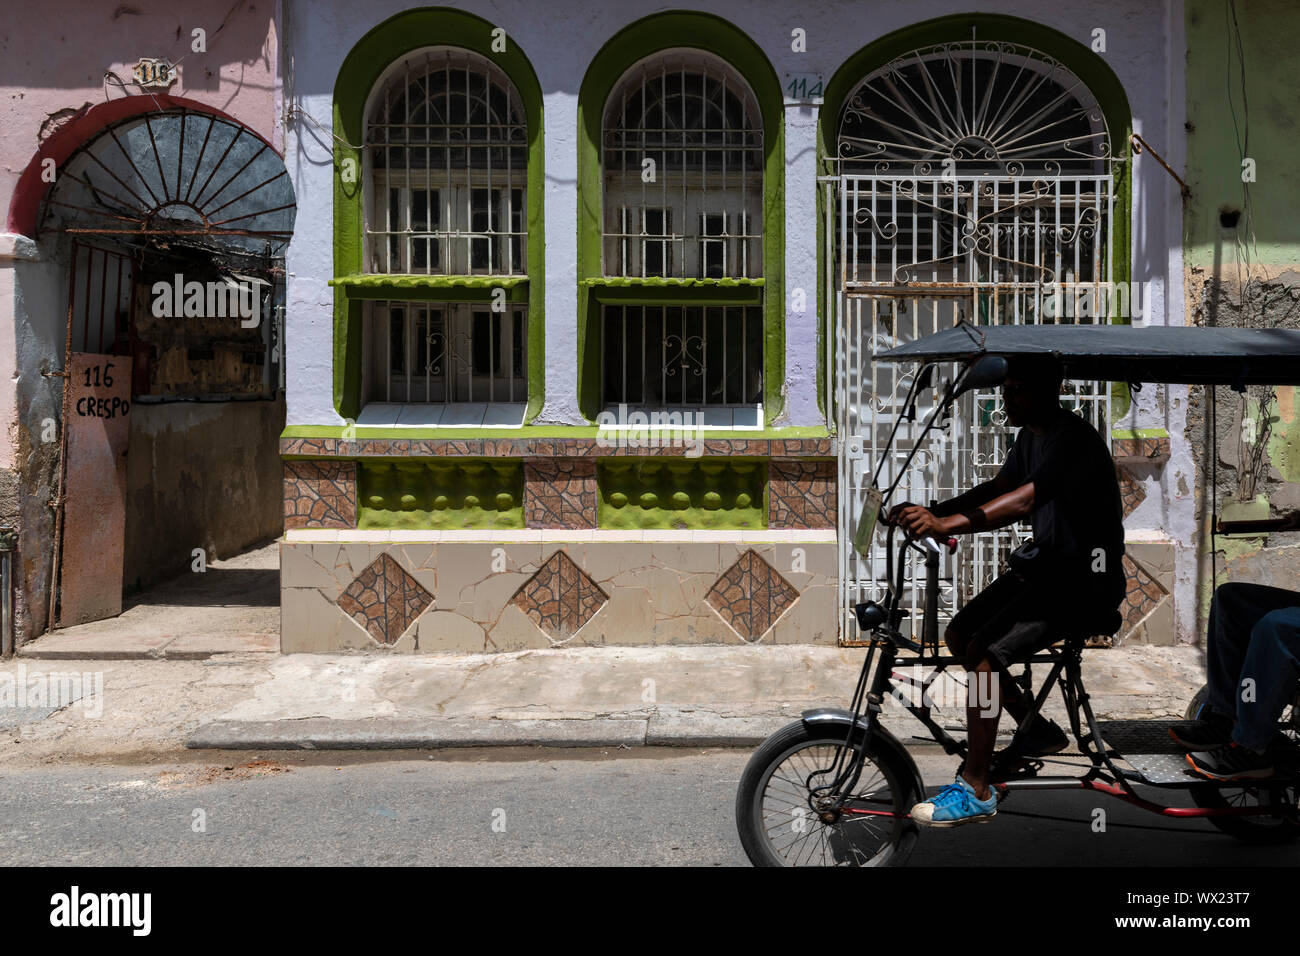 LA HAVANA, CUBA - JUNE  27, 2019: Cuban Colonial Architecture, To venture through Havana is to take a true history lesson of all the styles of archite Stock Photo